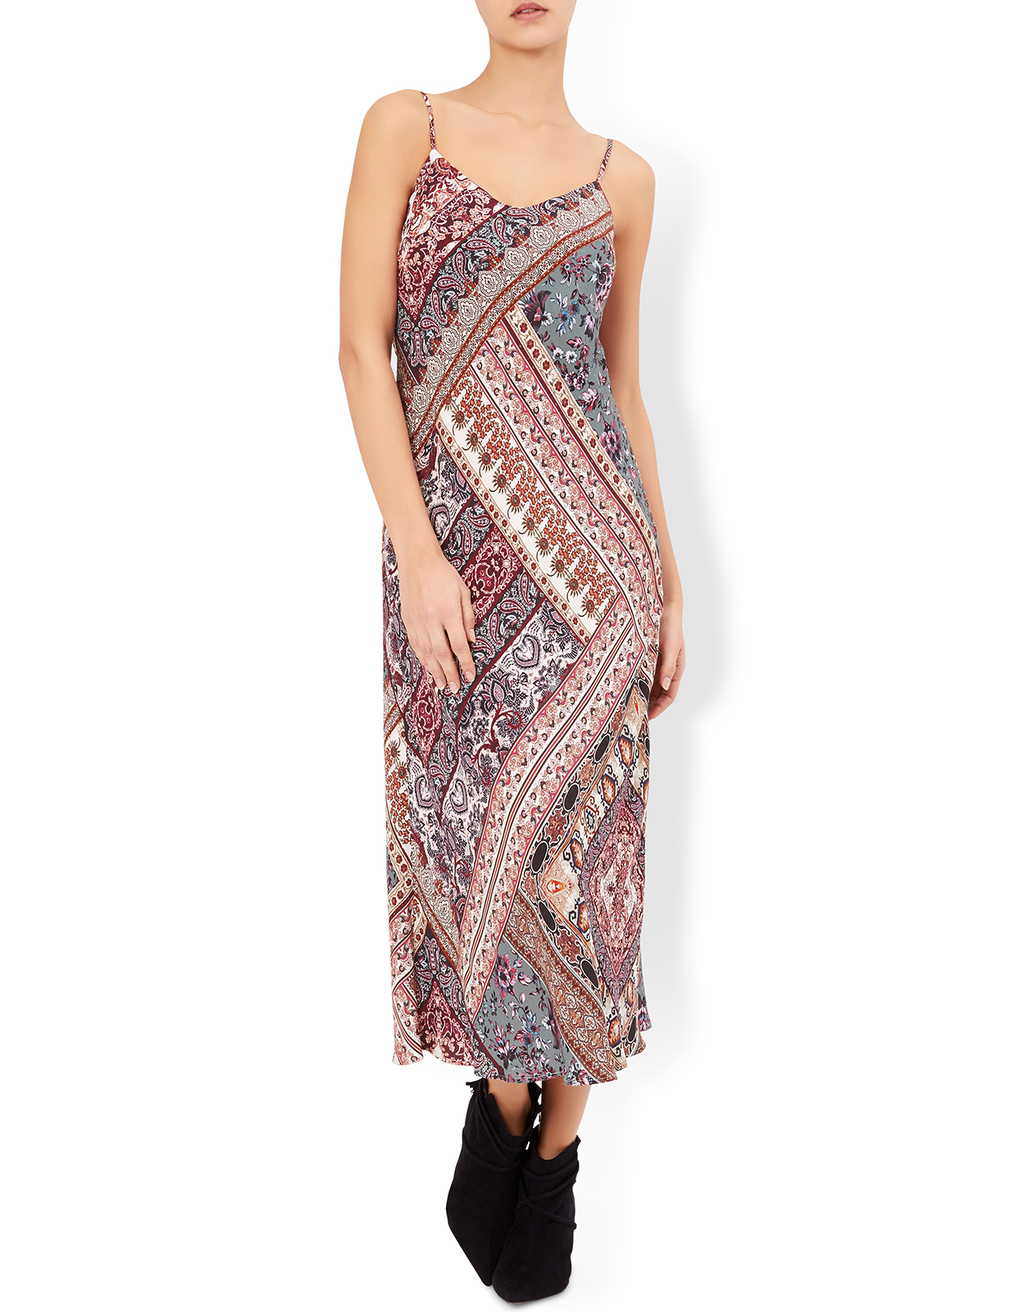 Ziggy Print Slip Dress - length: calf length; neckline: v-neck; sleeve style: spaghetti straps; pattern: paisley; back detail: back revealing; predominant colour: ivory/cream; secondary colour: burgundy; occasions: casual; fit: body skimming; style: slip dress; fibres: viscose/rayon - 100%; sleeve length: sleeveless; pattern type: fabric; pattern size: big & busy; texture group: woven light midweight; multicoloured: multicoloured; season: a/w 2016; wardrobe: highlight